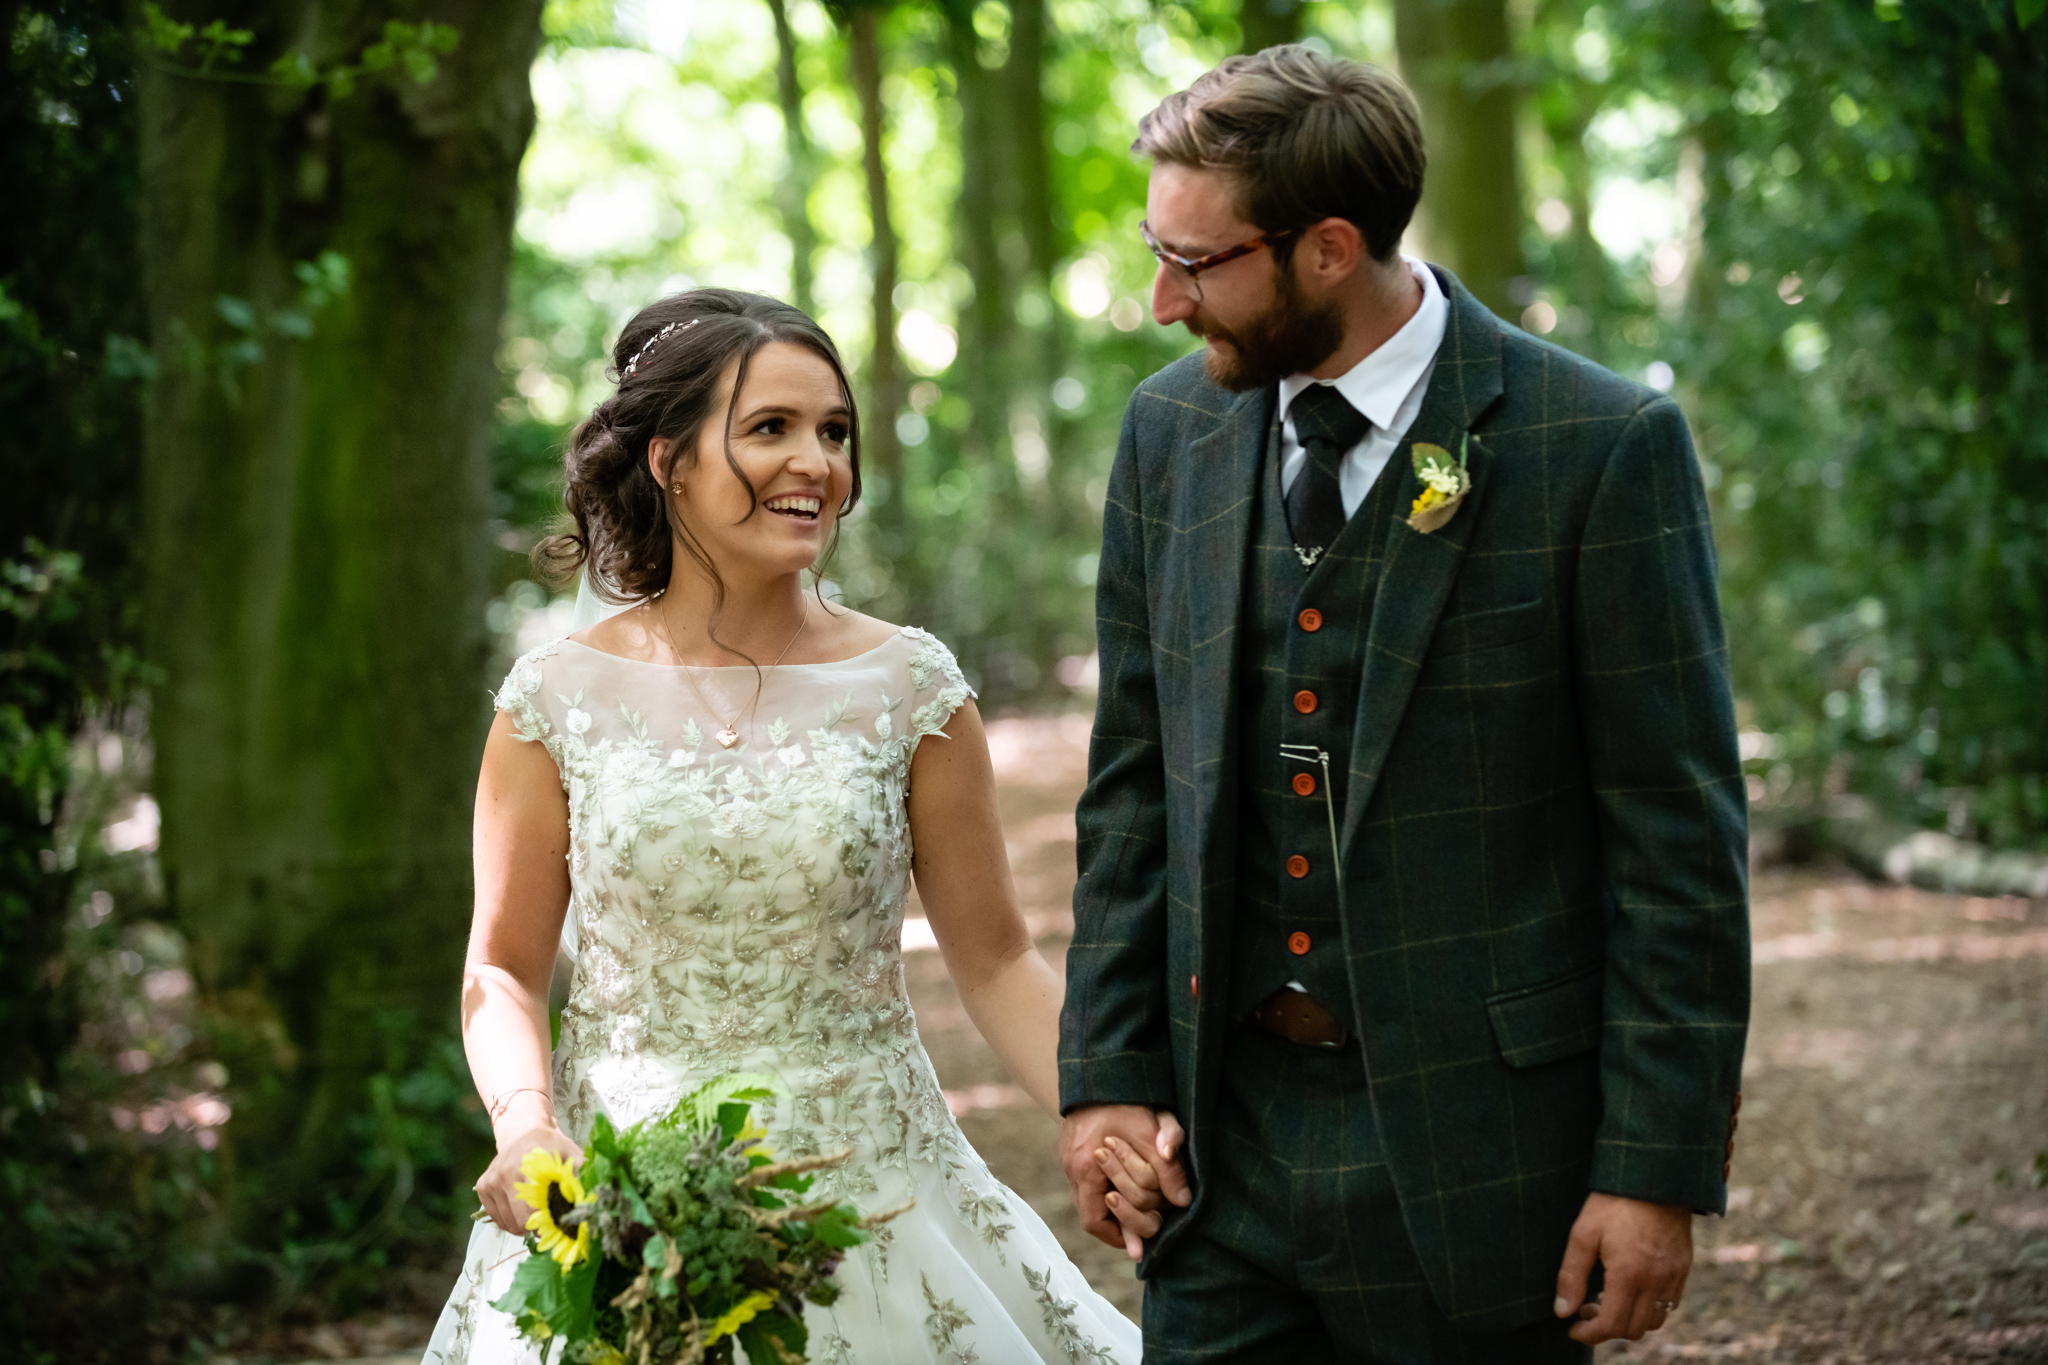 A portrait of the bride and groom at their woodland wedding